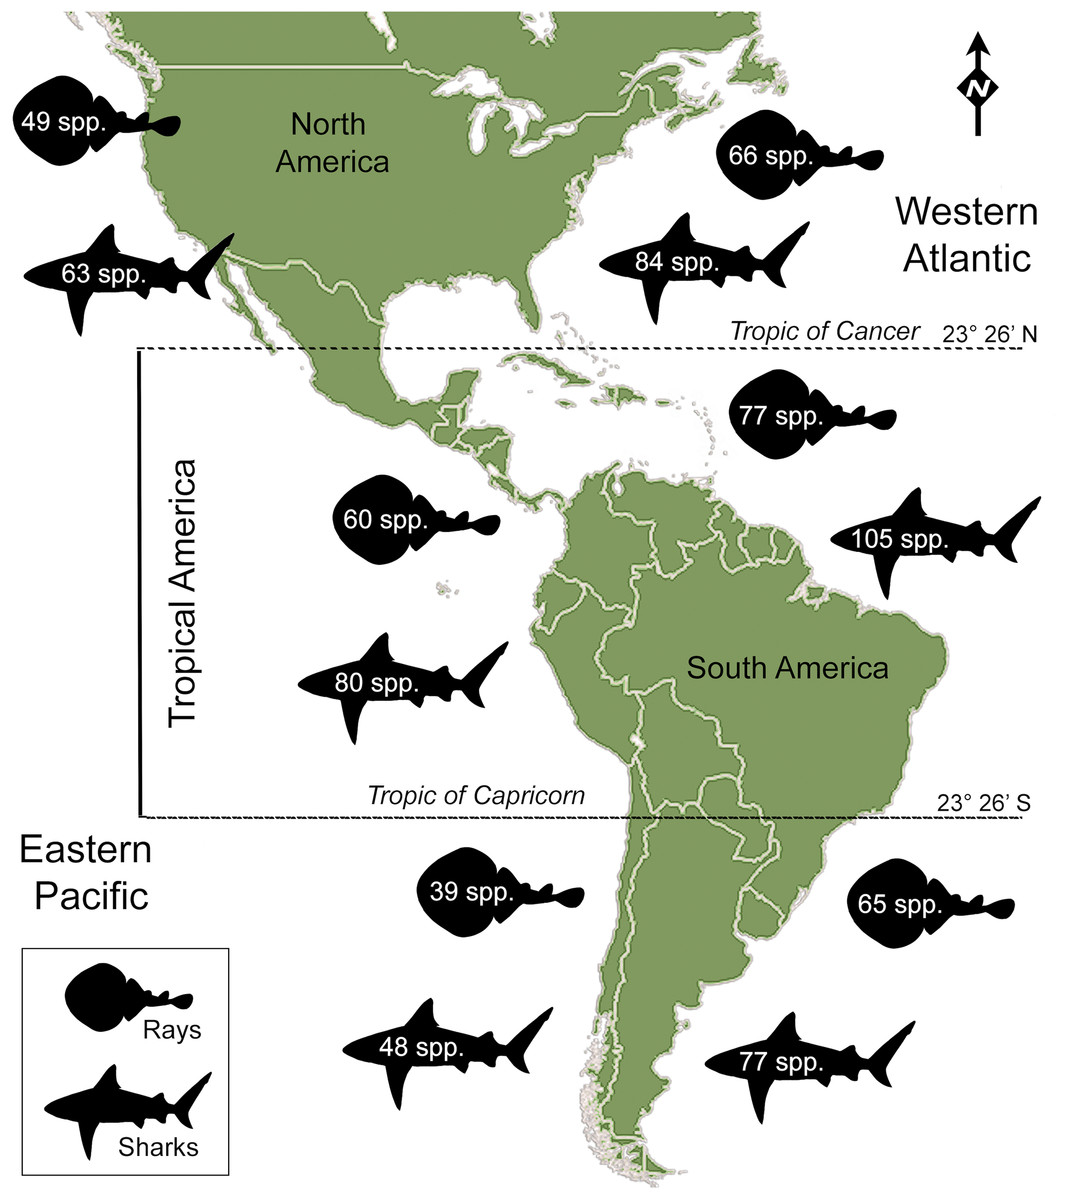 Shark and ray diversity in the Tropical America (Neotropics